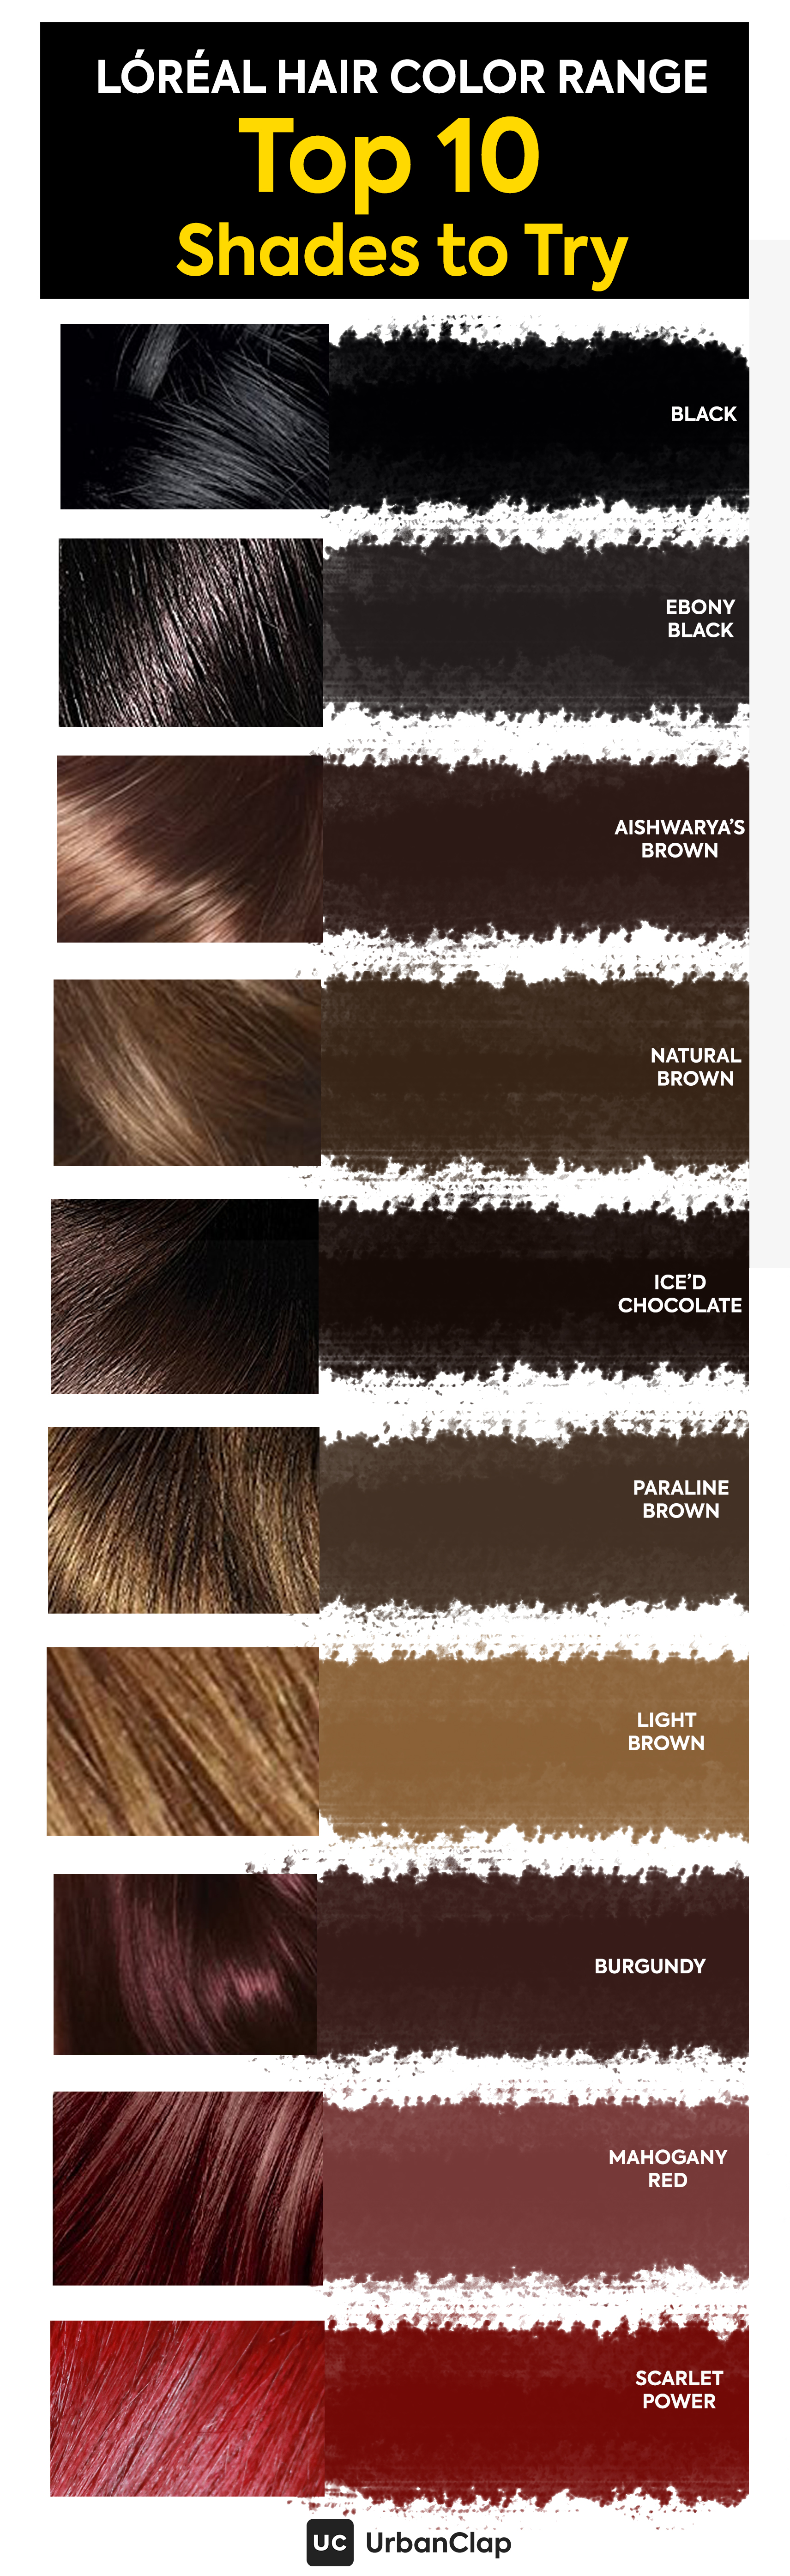 Loreal Hair Color Range Top 10 Shades For Indian Skin Tones